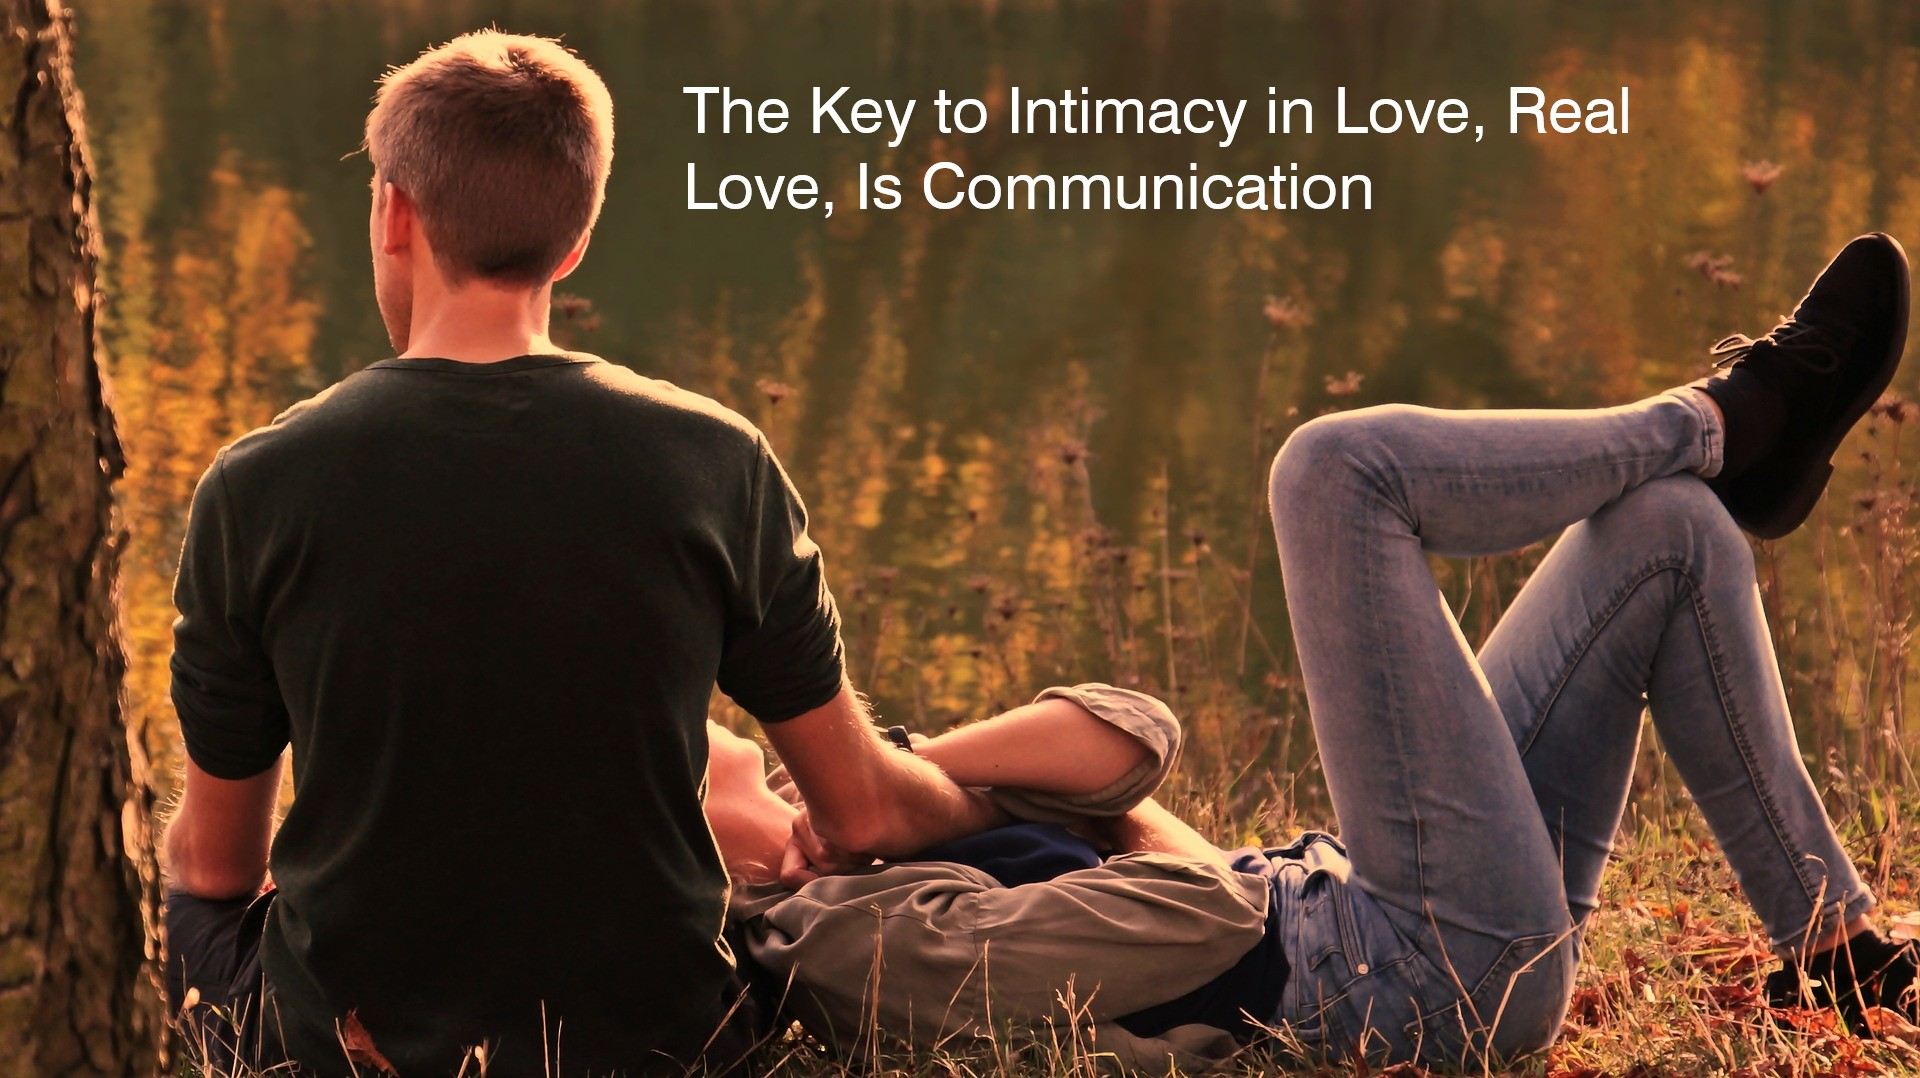 The Key to Intimacy in Love, Real Love, Is Communication